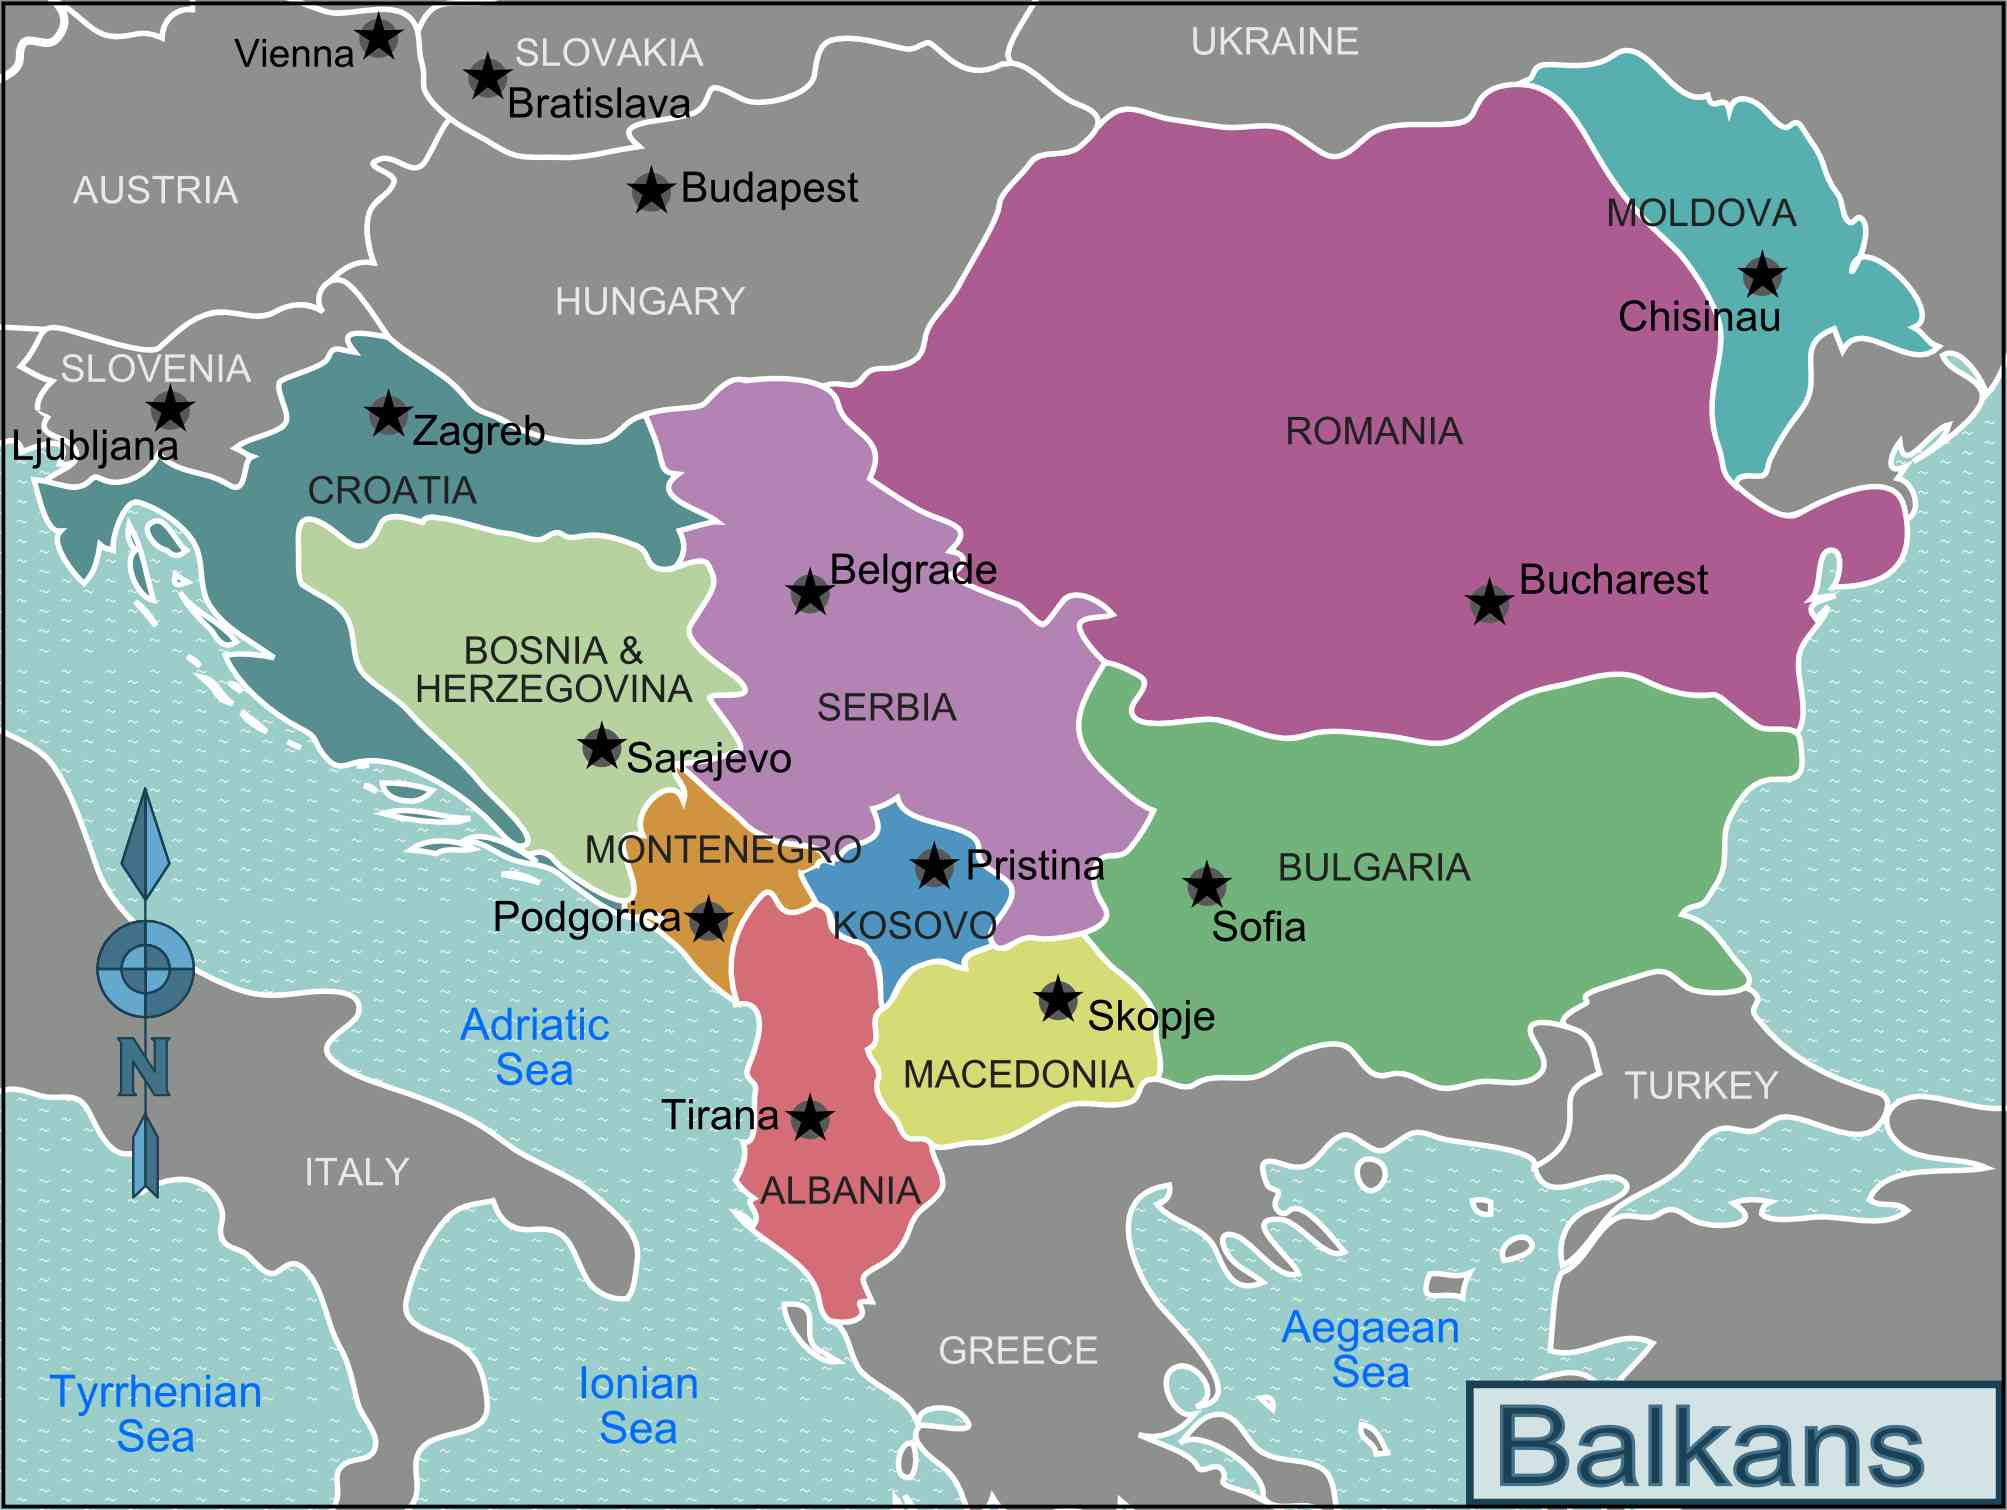 The Balkans Map Which Countries Are Part of the Balkan States?